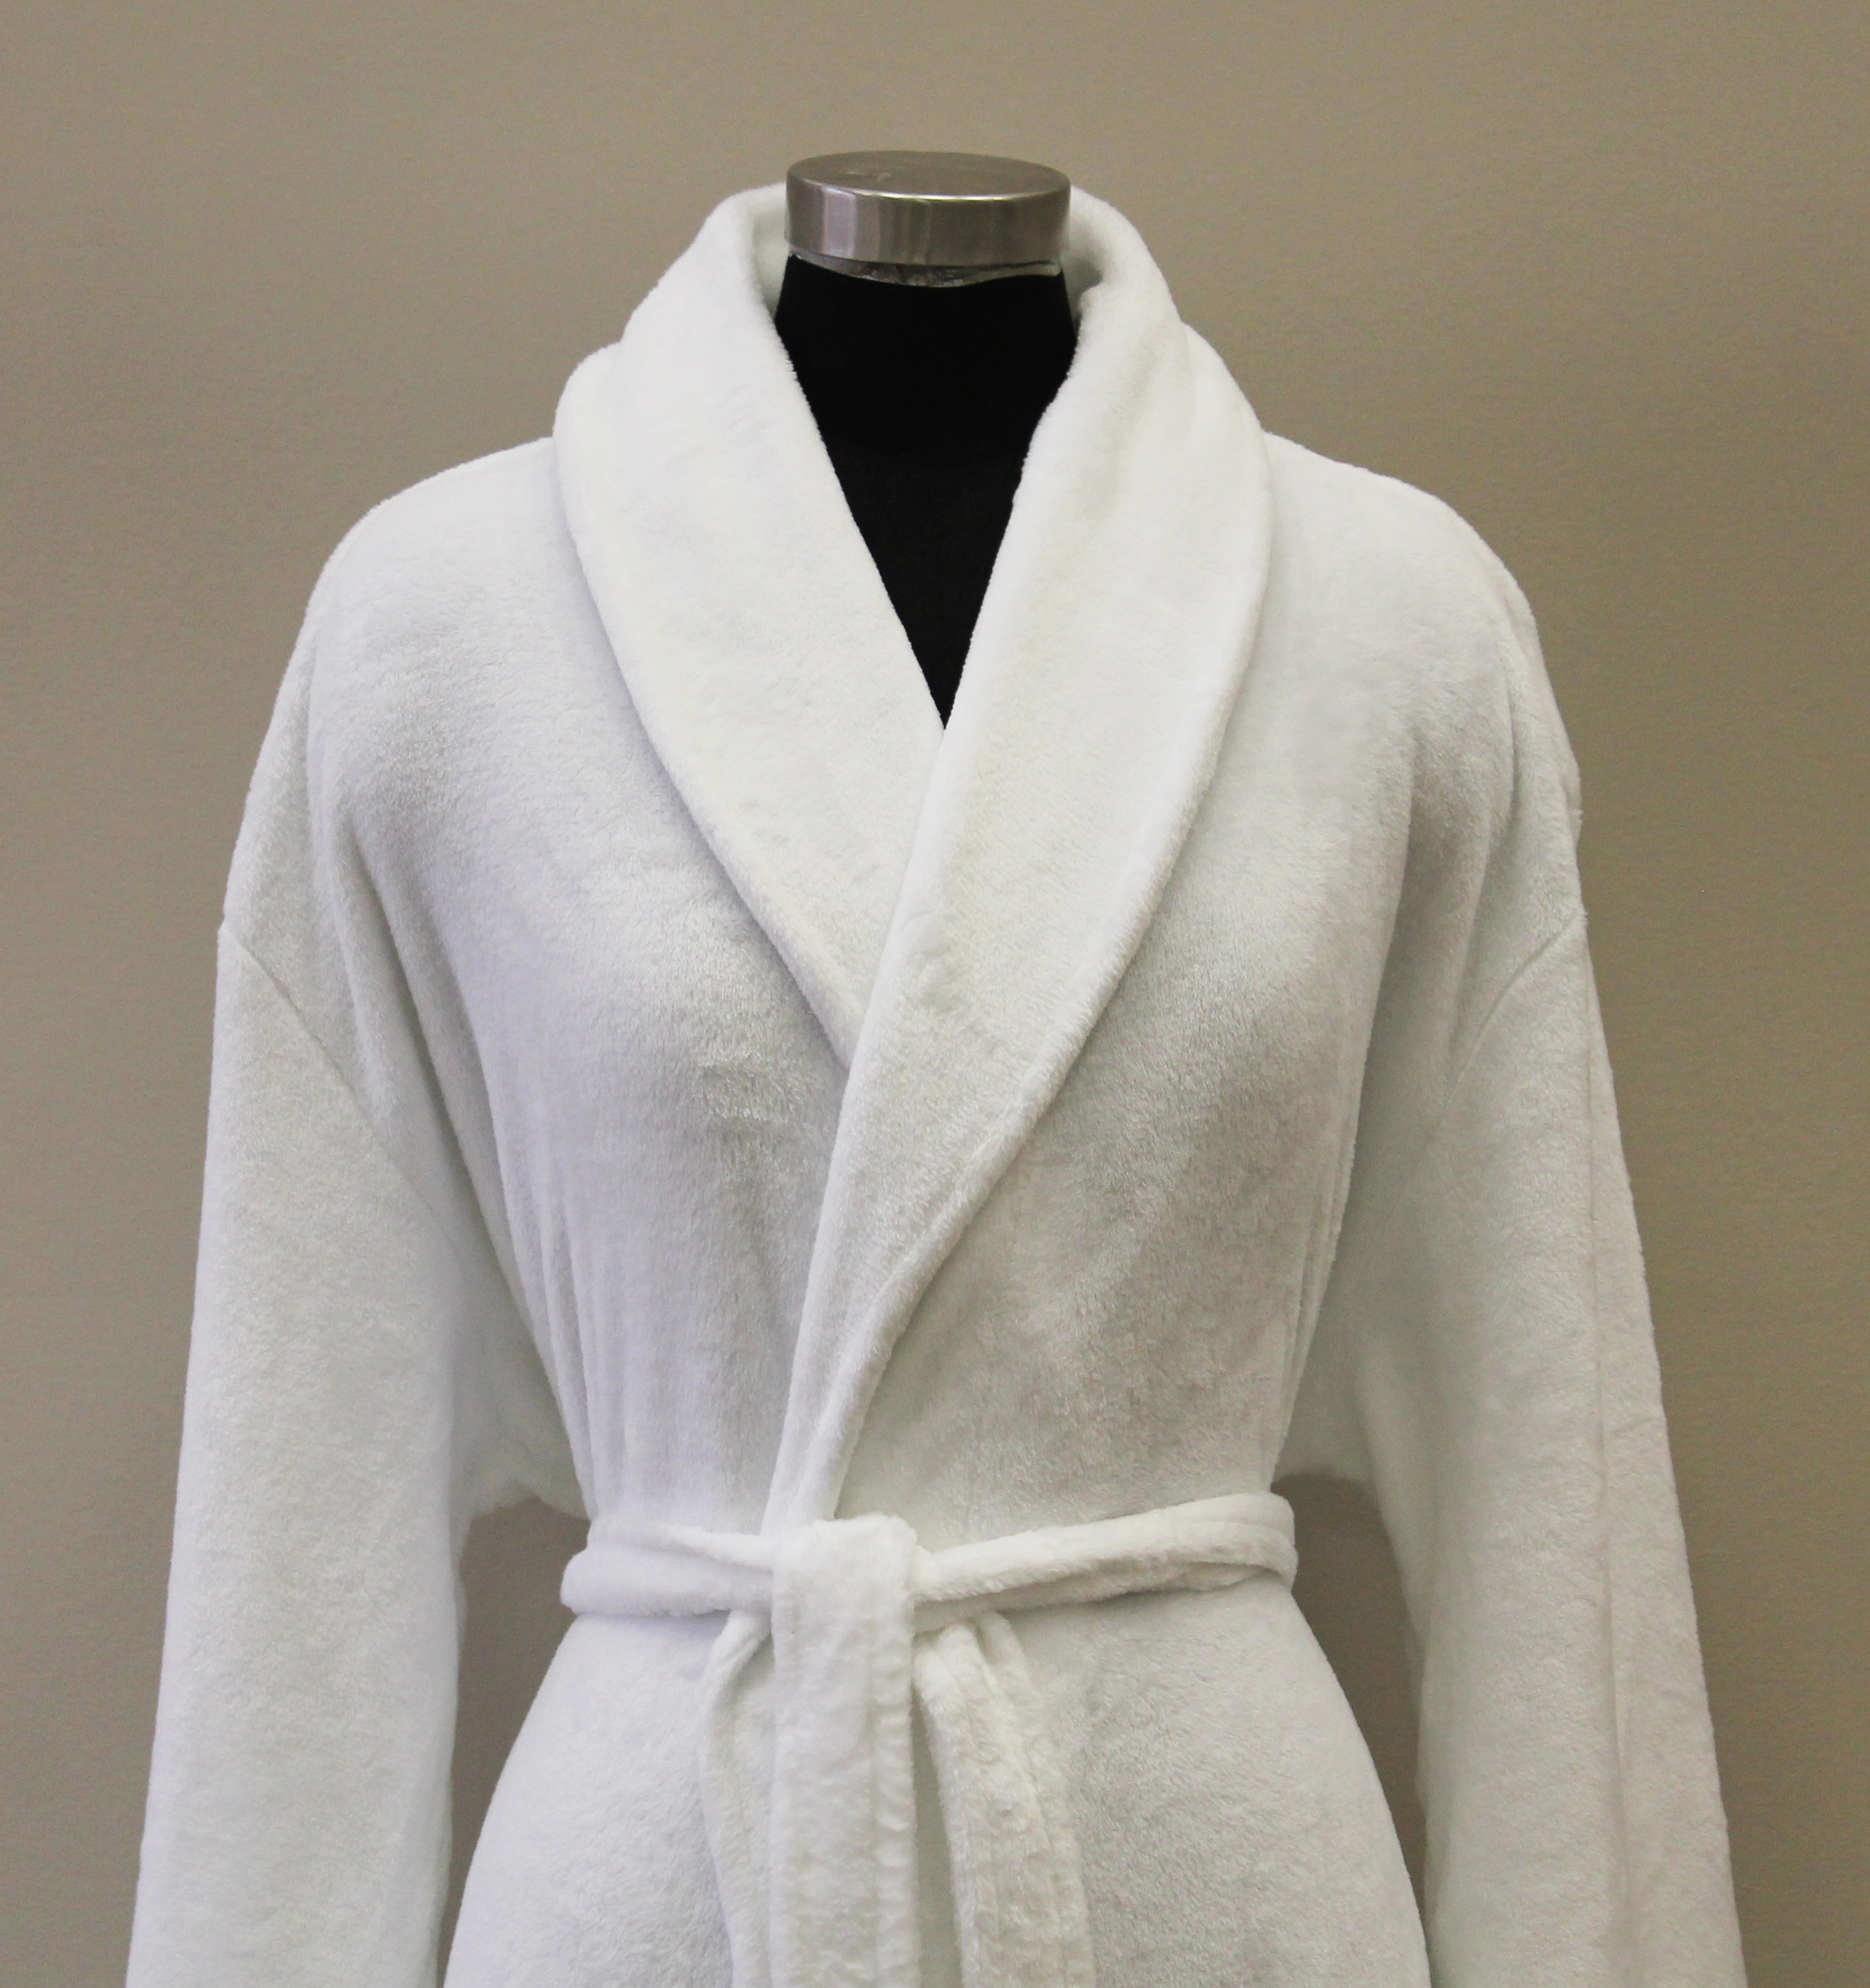 Plush Lounge Robe - White - Close View